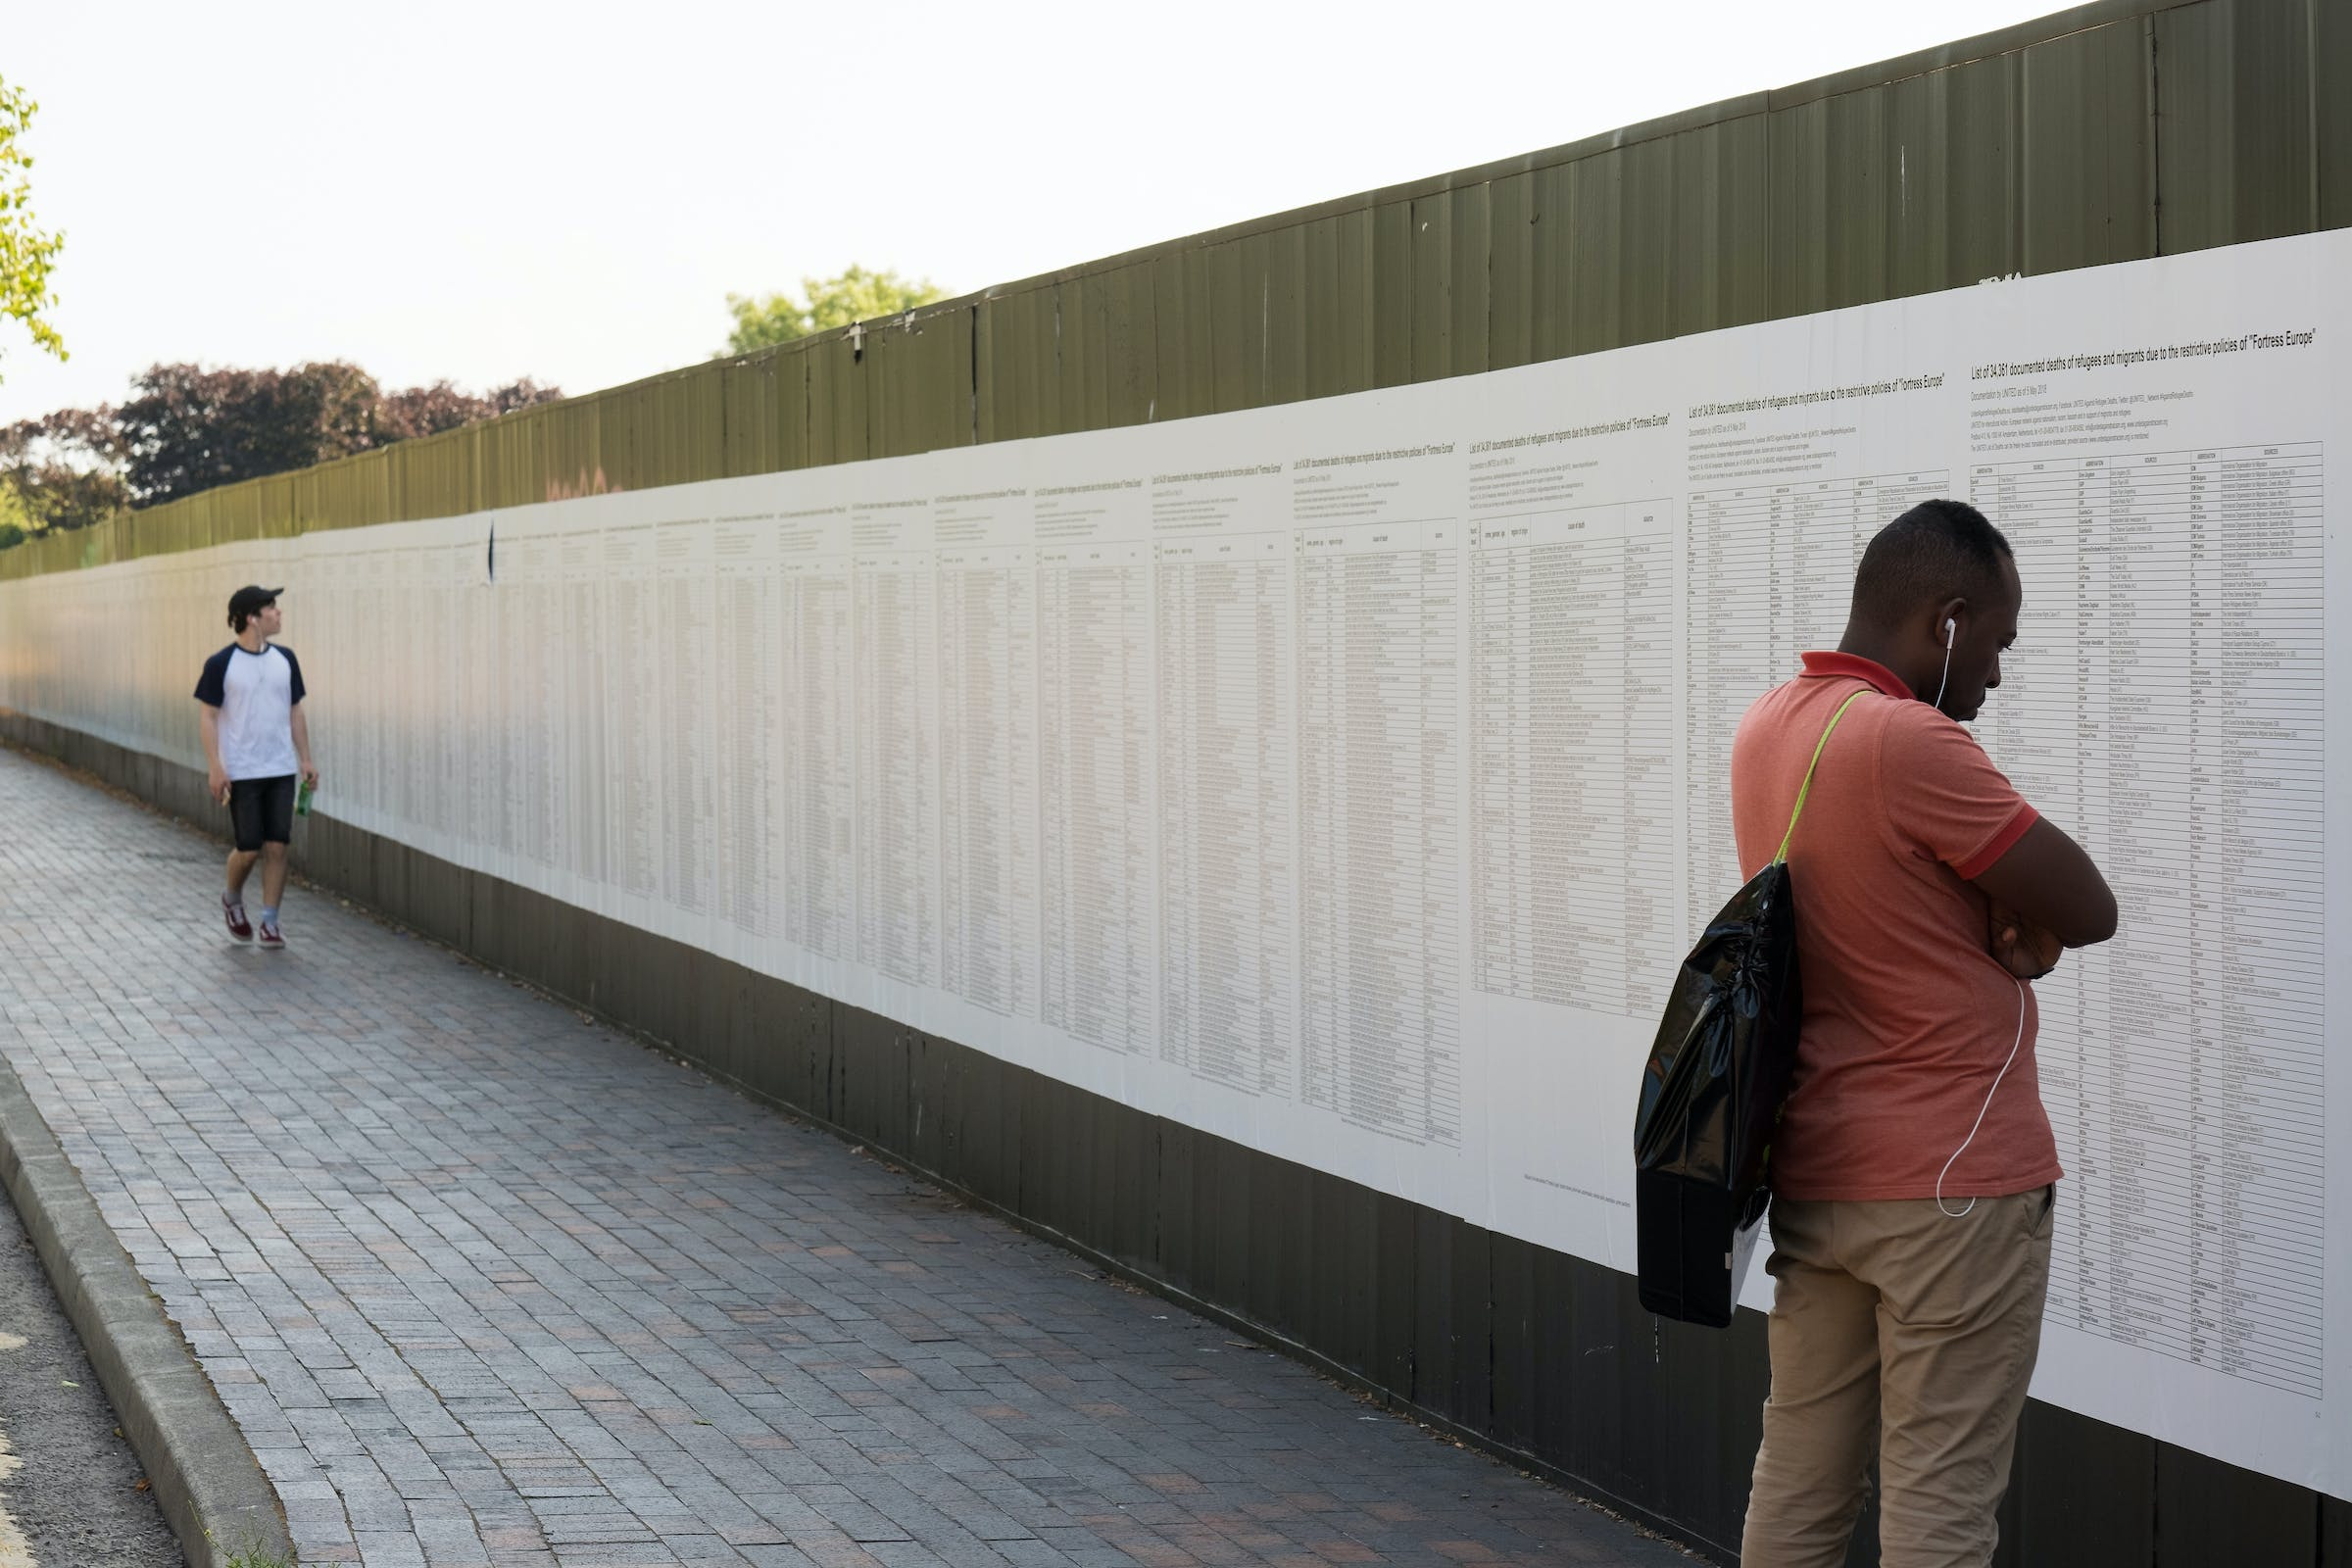 'The List', before its defacement. Credit: Liverpool Biennial/Mark McNulty.